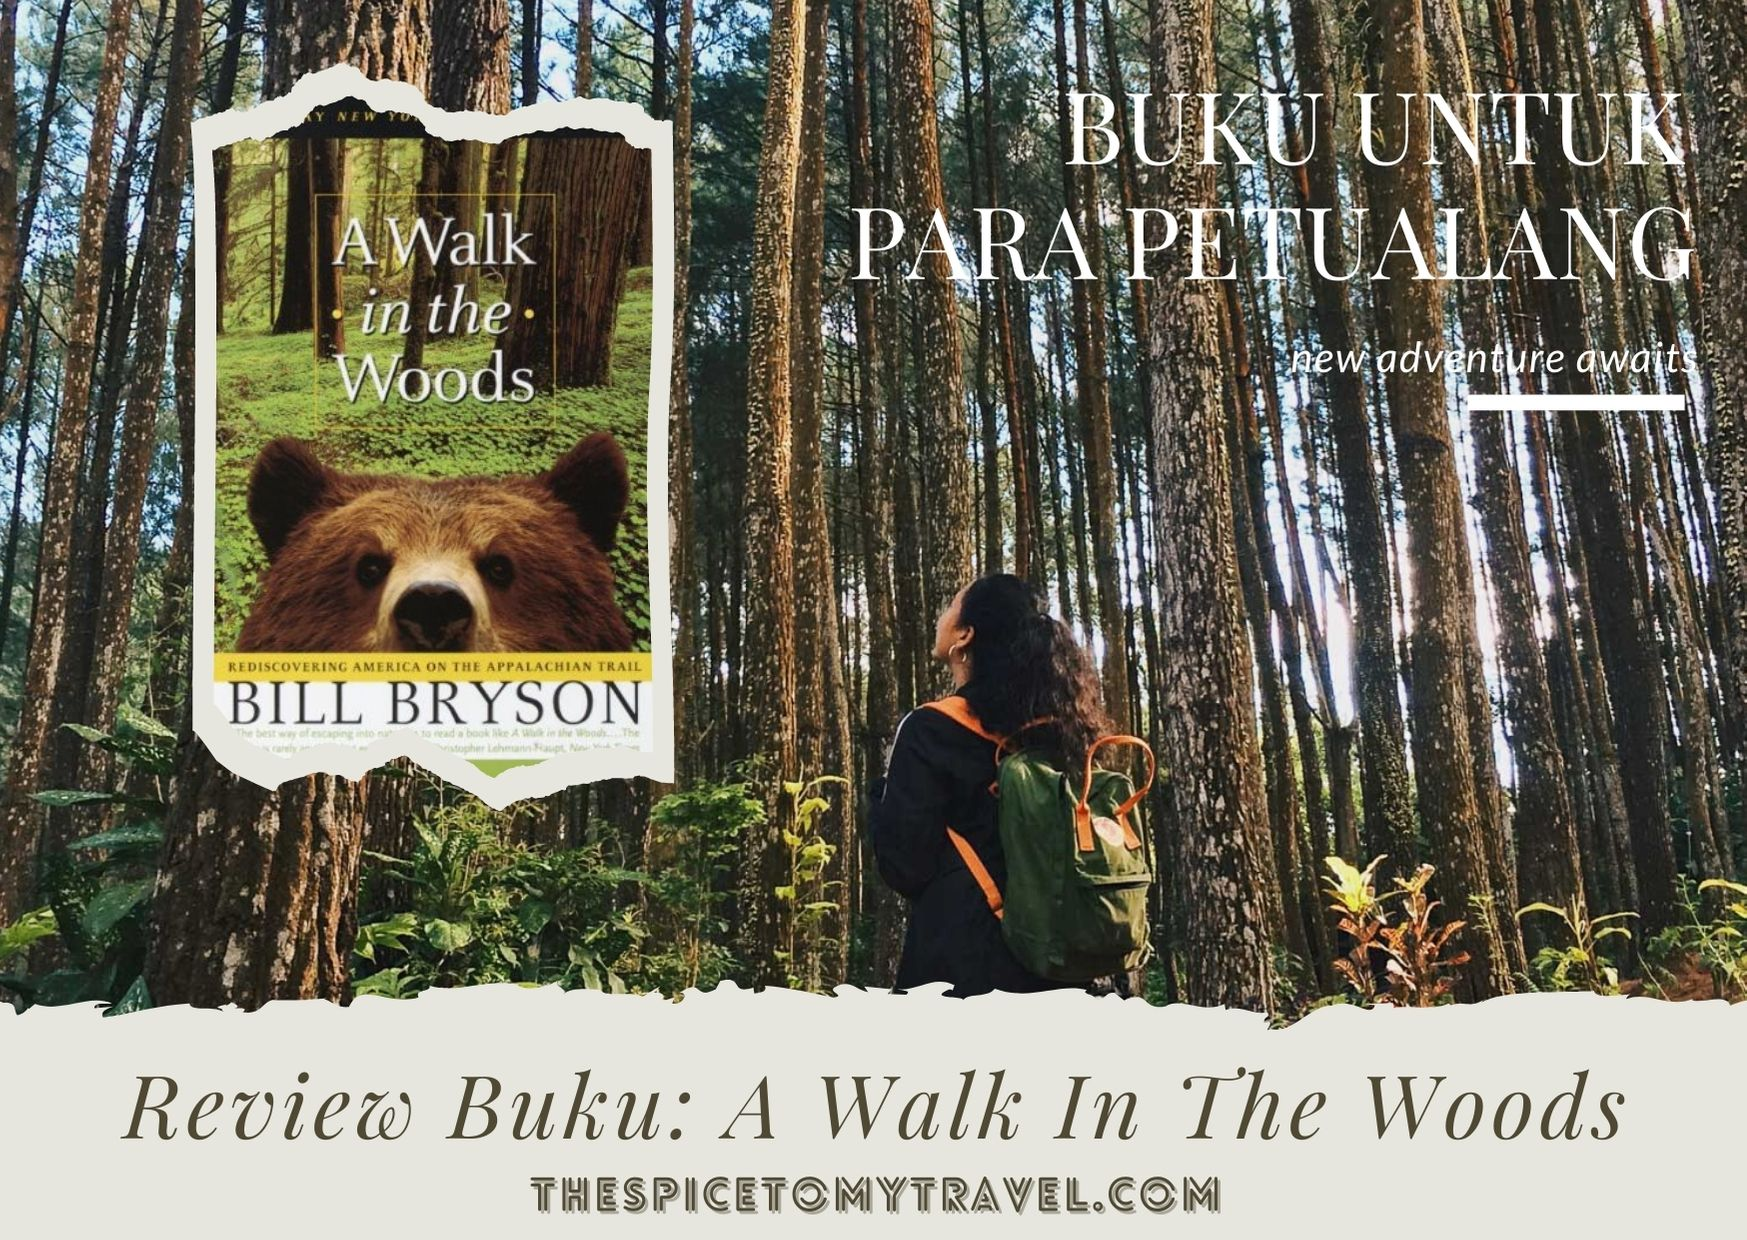 Review Buku: A Walk In The Woods